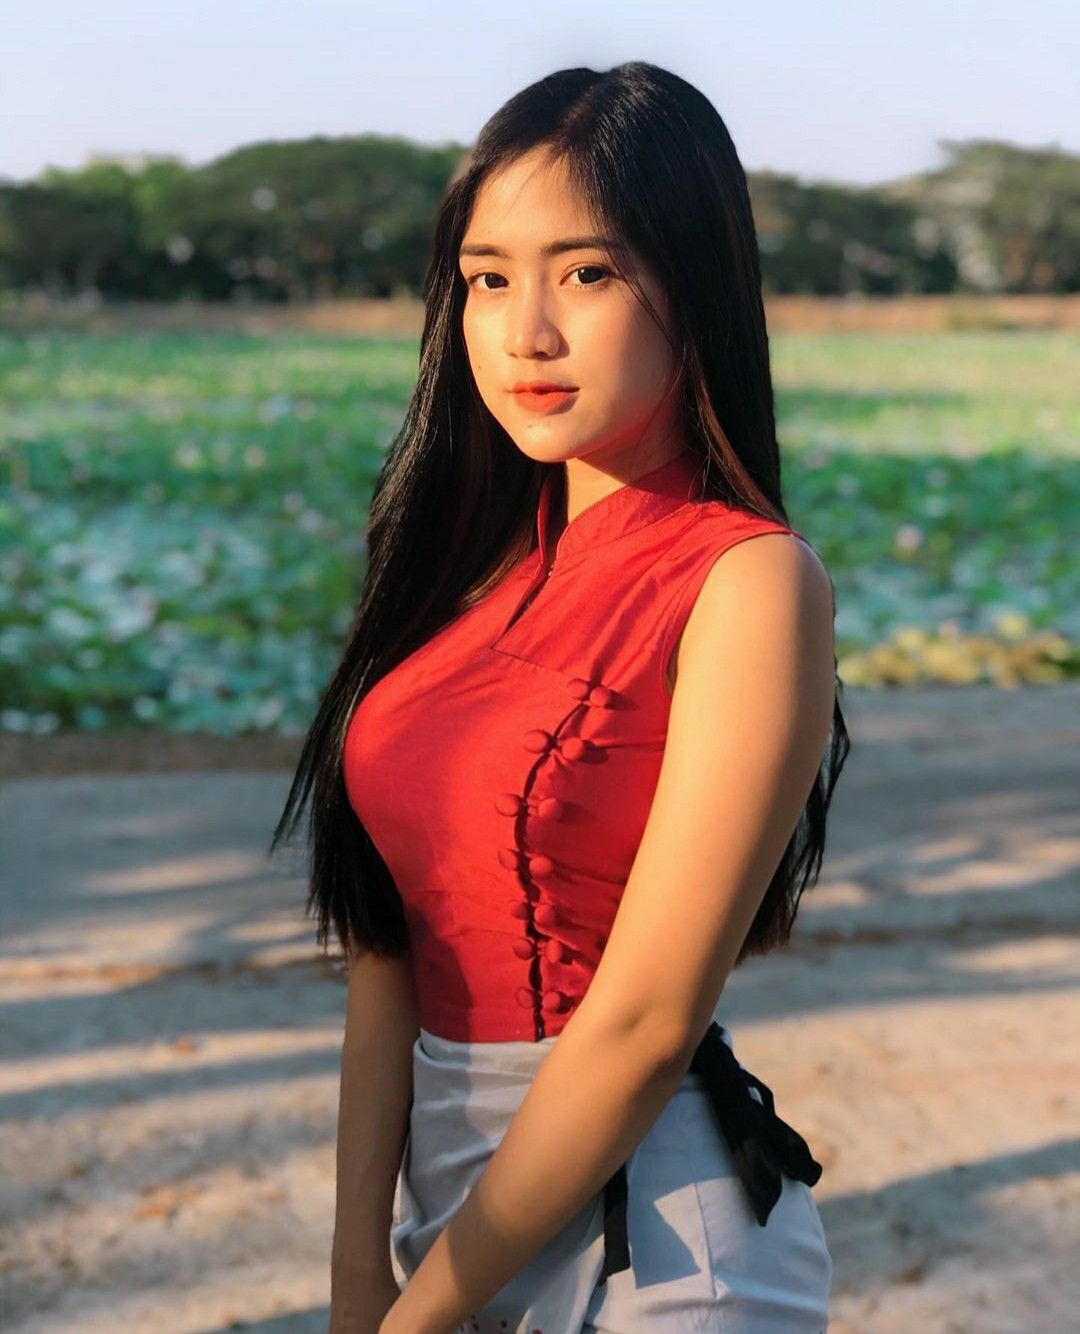 model girl picture free Asian